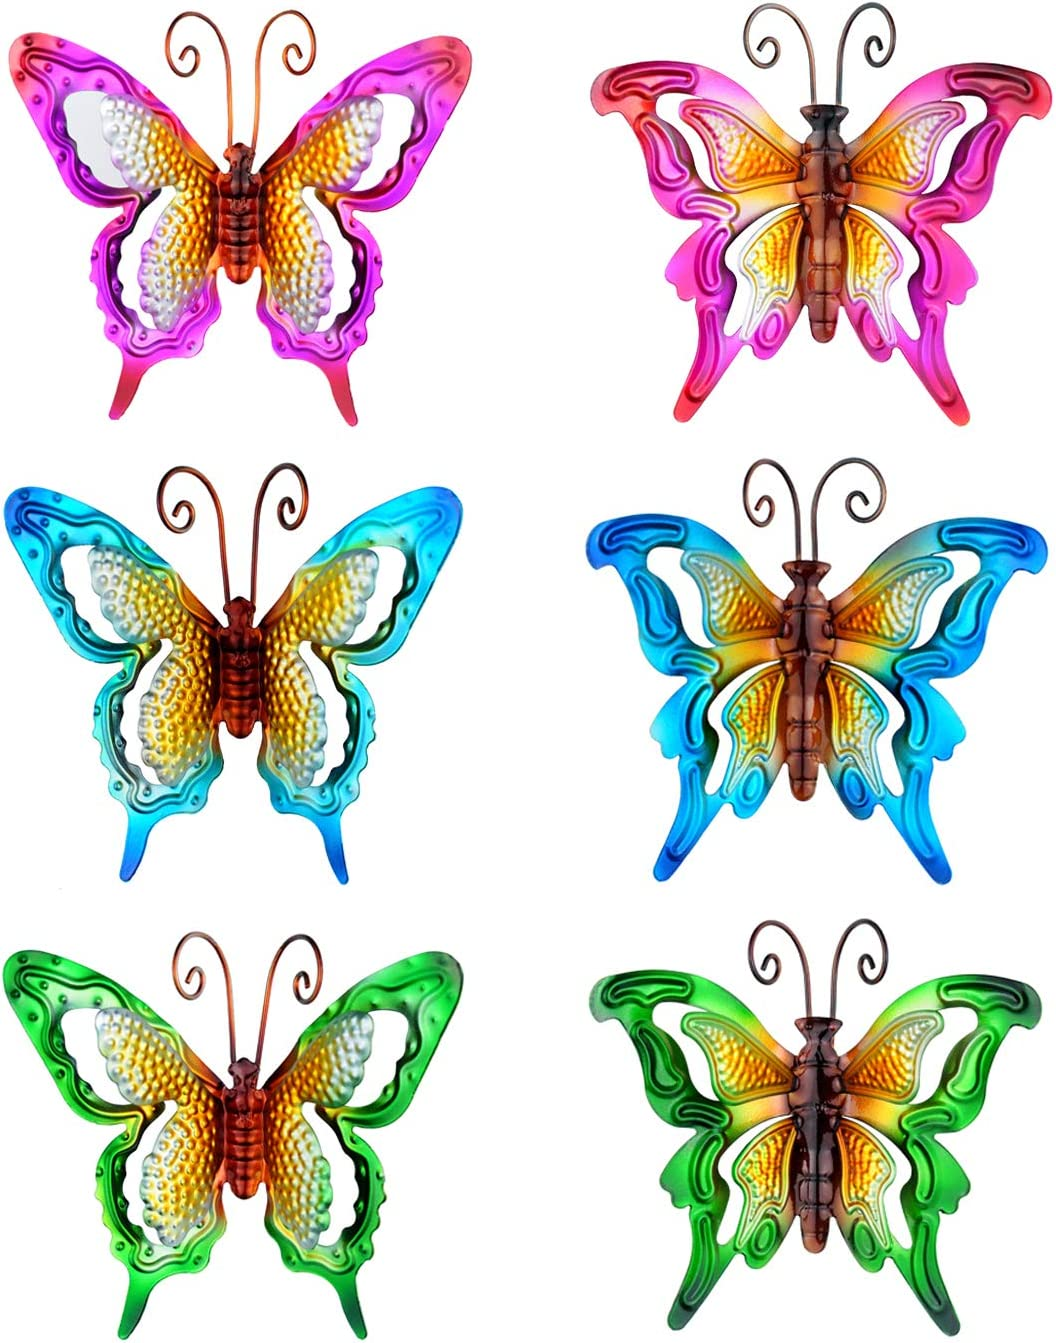 6 Pieces Butterfly Decor, Metal Butterfly Wall Art Ornaments, Red Green Blue Hovering Butterflies for Indoors-Bathroom Bedroom Living Room Dining Room or Outdoors-Garden Yard Fence Tree (6.5-Inch)